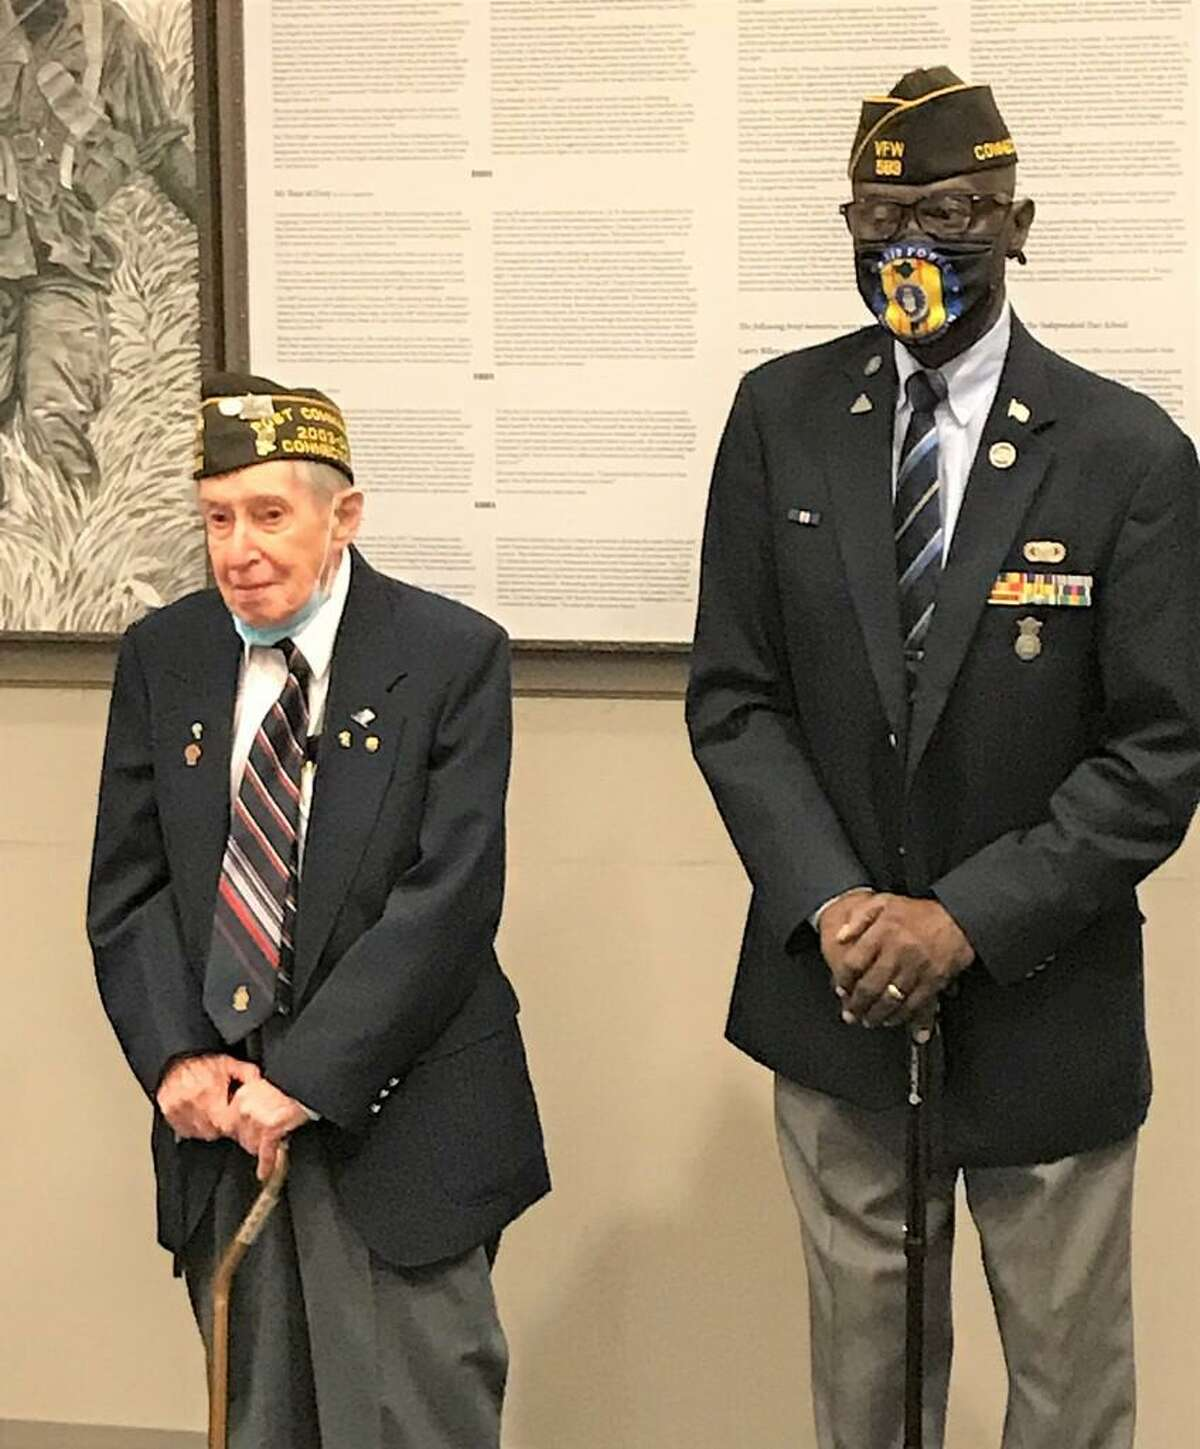 Veterans Raymond Trembly, left, who fought in World War II, and Lawrence Riley, a Vietnam veteran.